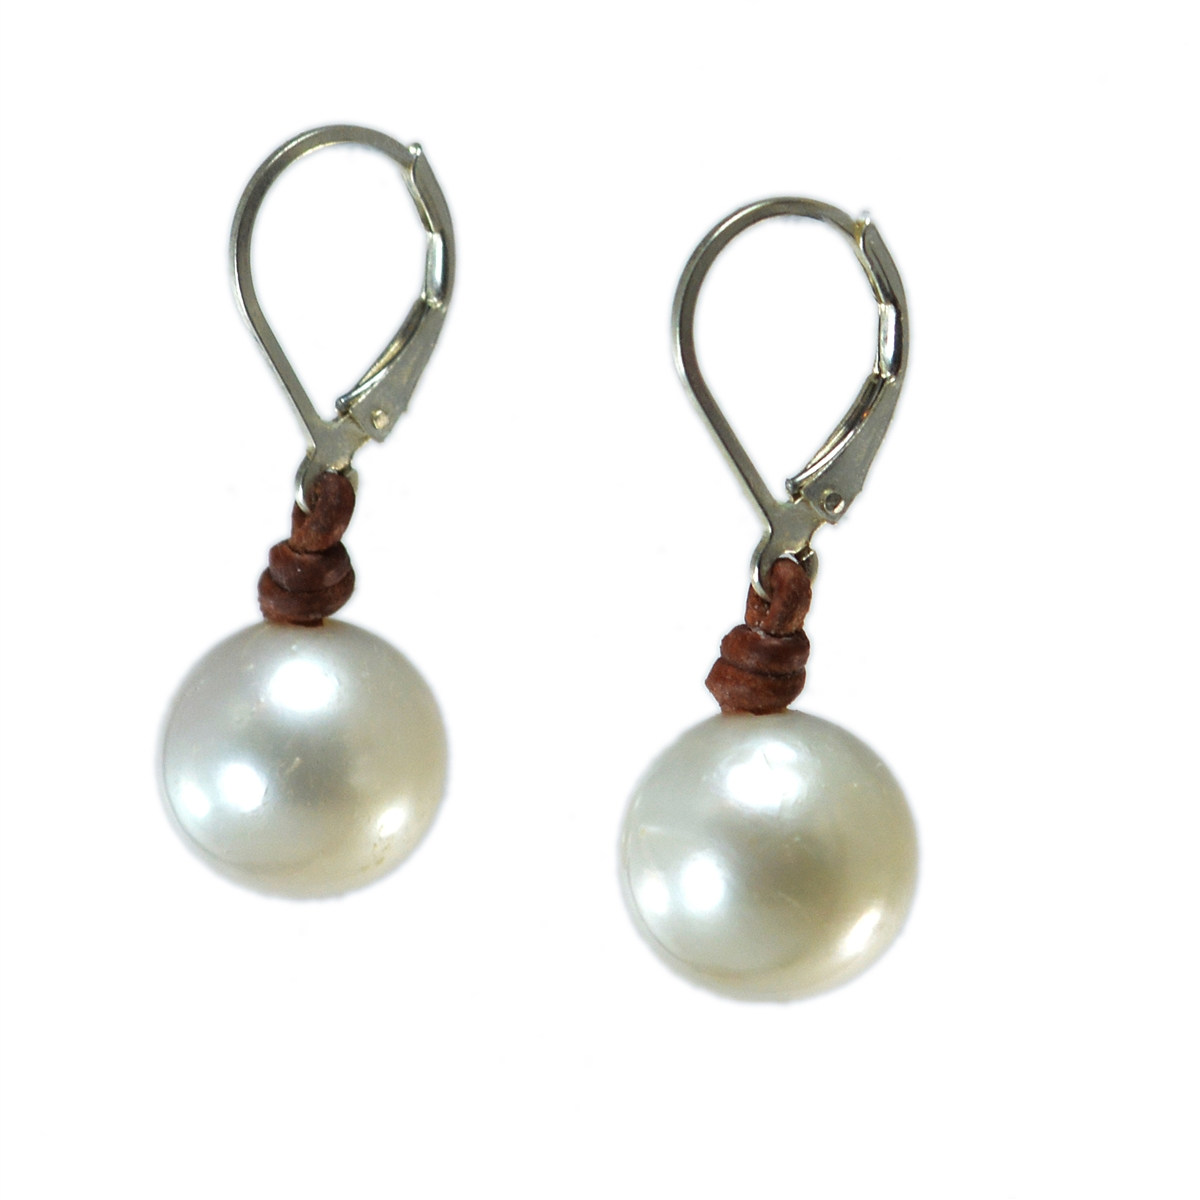 earrings single up penny products pearl close preville black